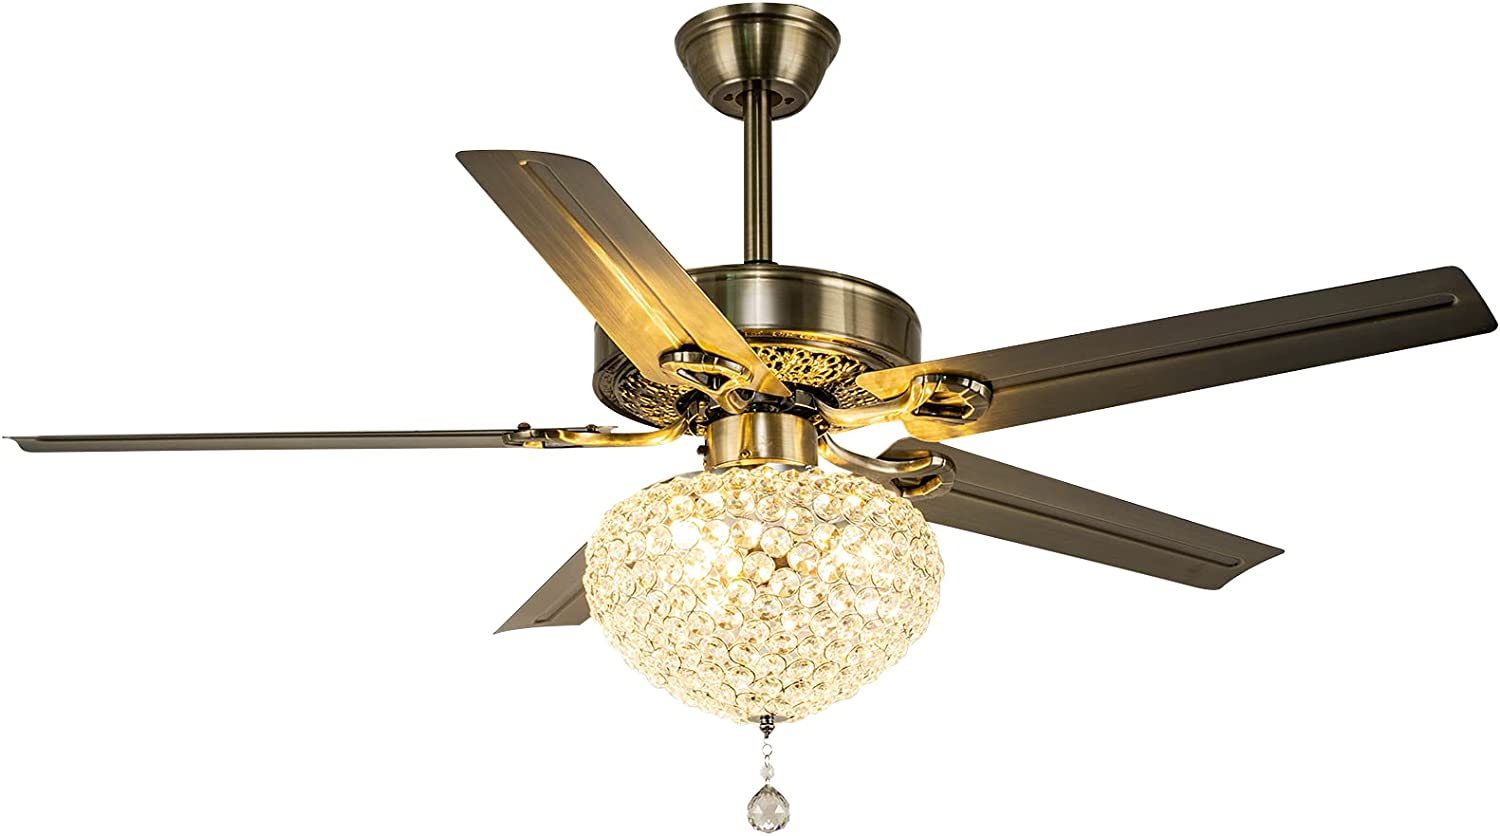 Modern OFFicial Ceiling Fan with Chandeliers Crystal Kit Light Award-winning store